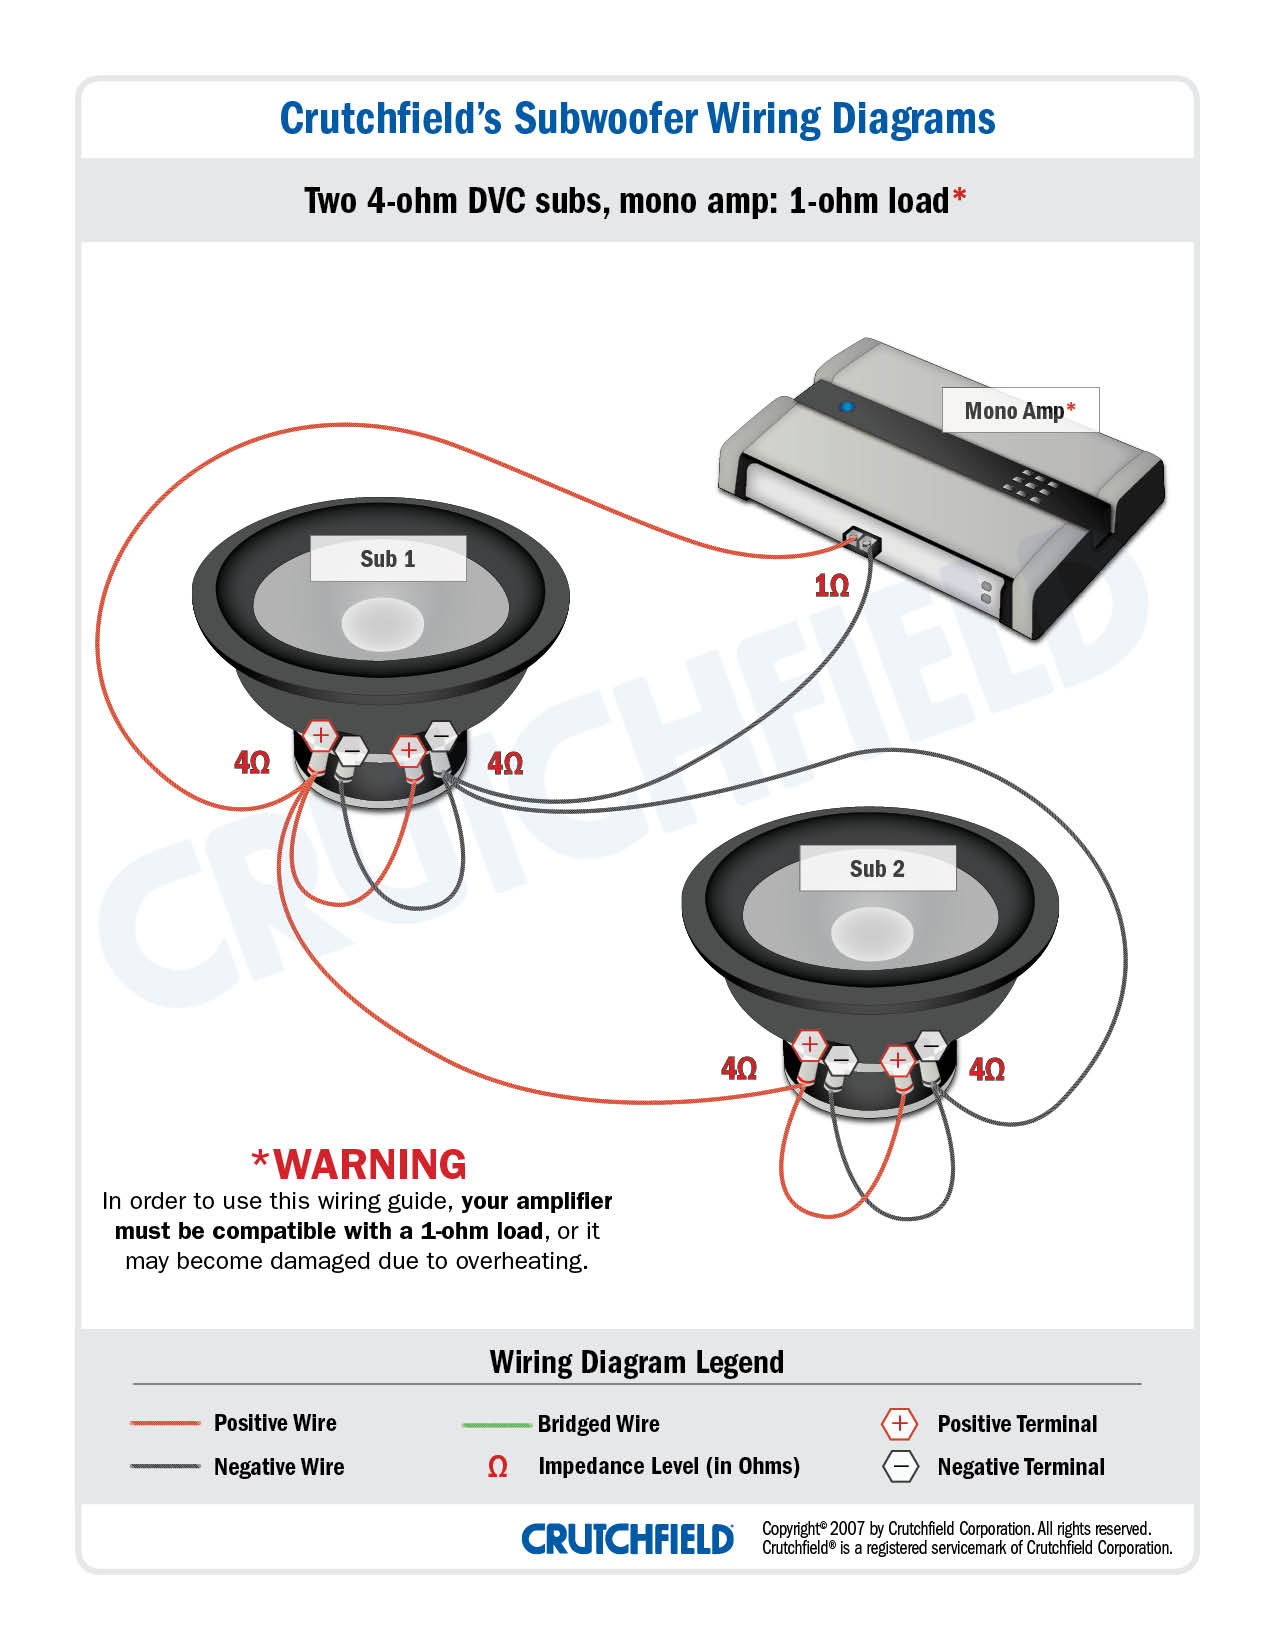 Amplifier Wiring Diagrams: How To Add An Amplifier To Your Car Audio - Car Speaker Wiring Diagram